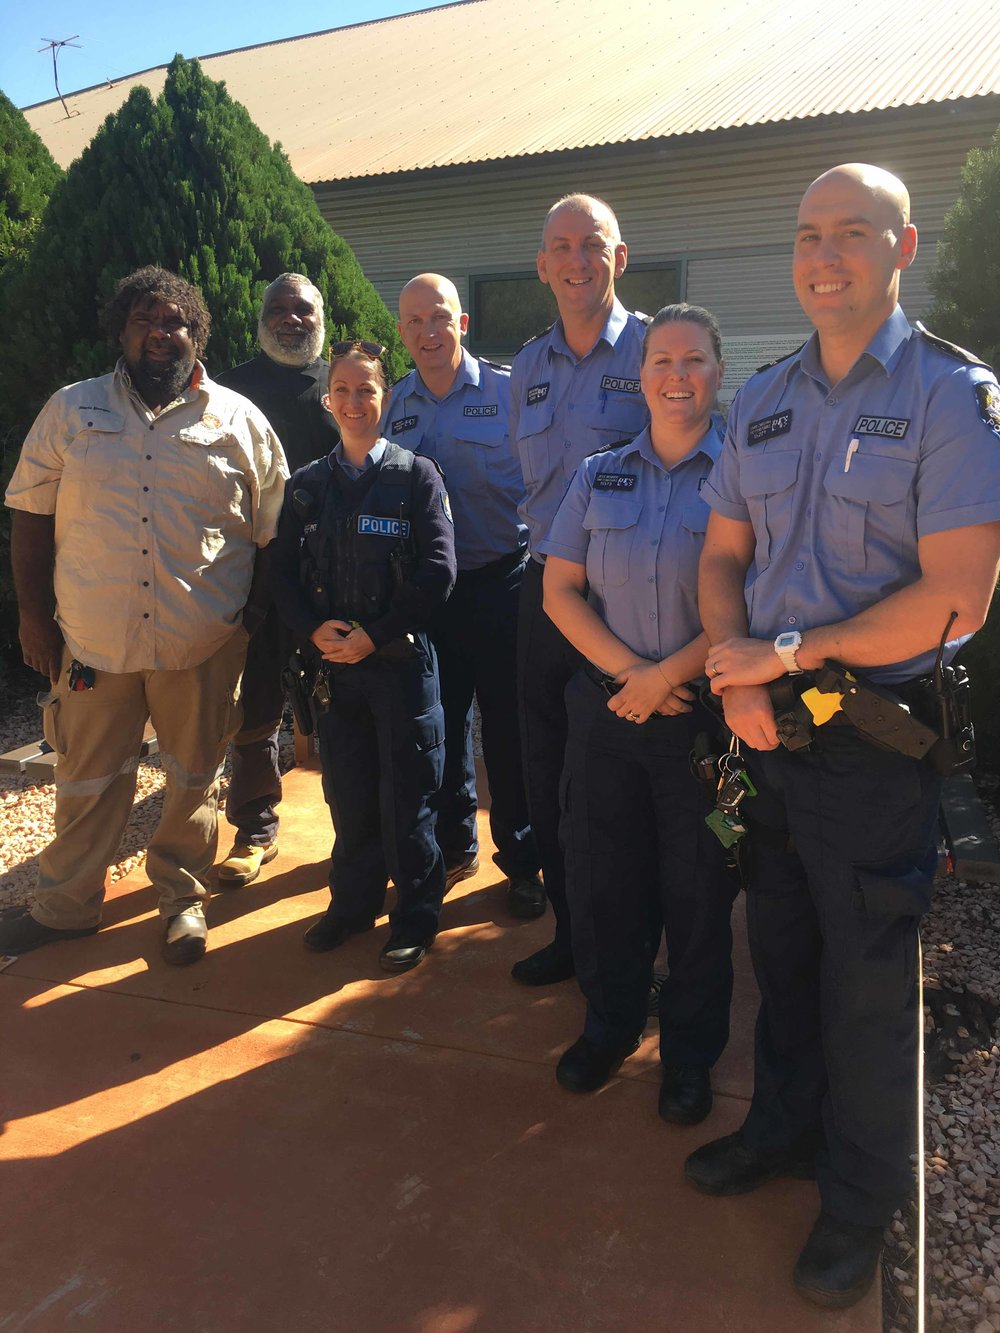 Martu leadership participants talking with the Newman police